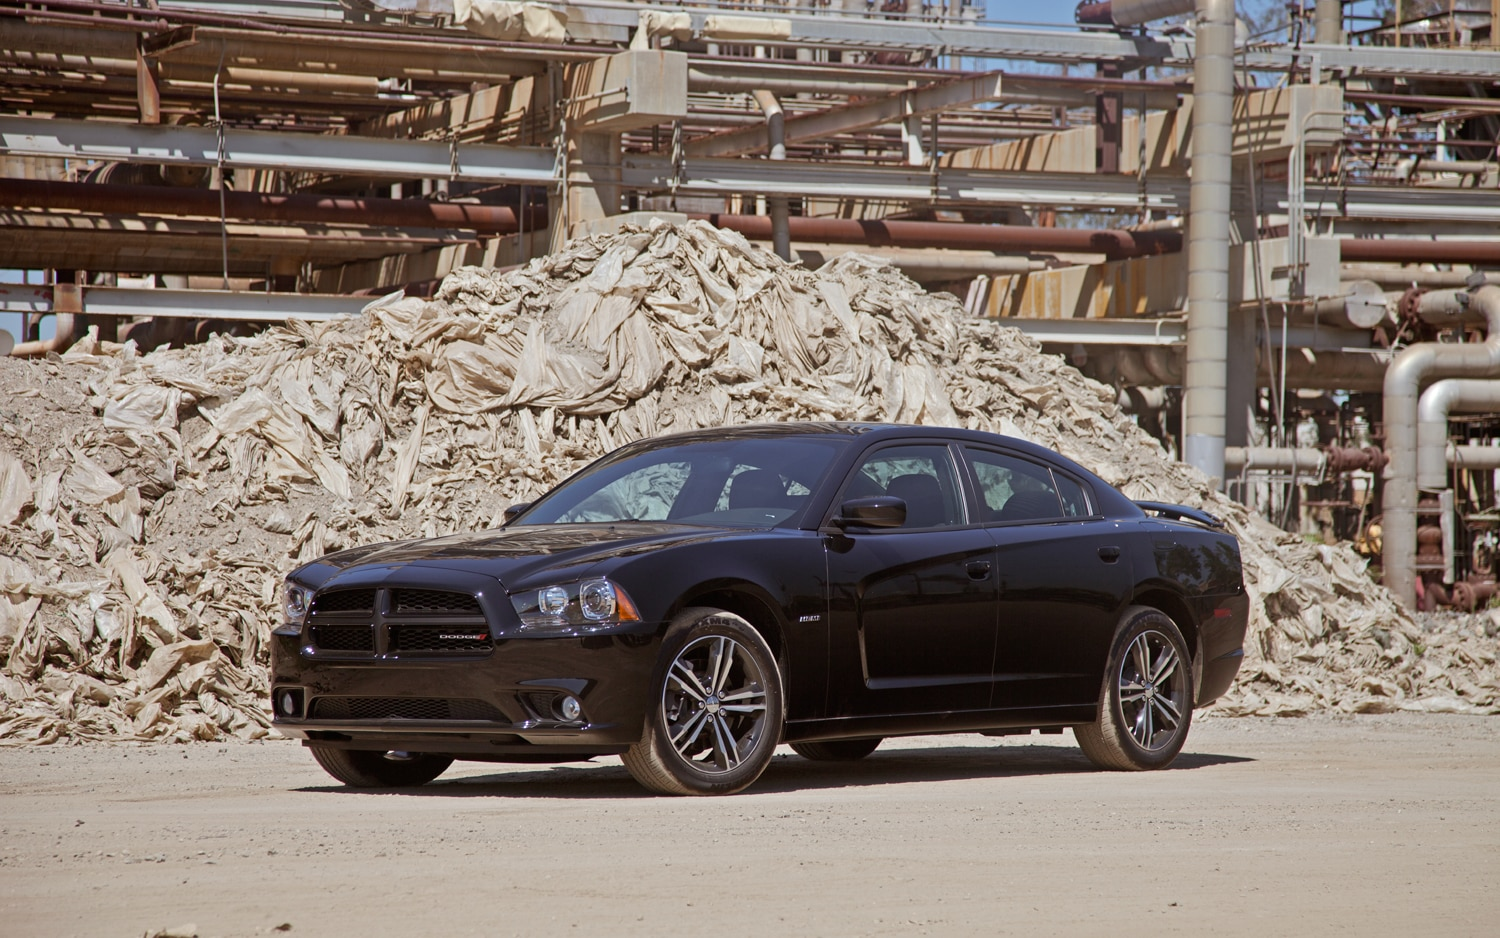 2013 dodge charger r t awd - Dodge Charger 2013 White Black Rims